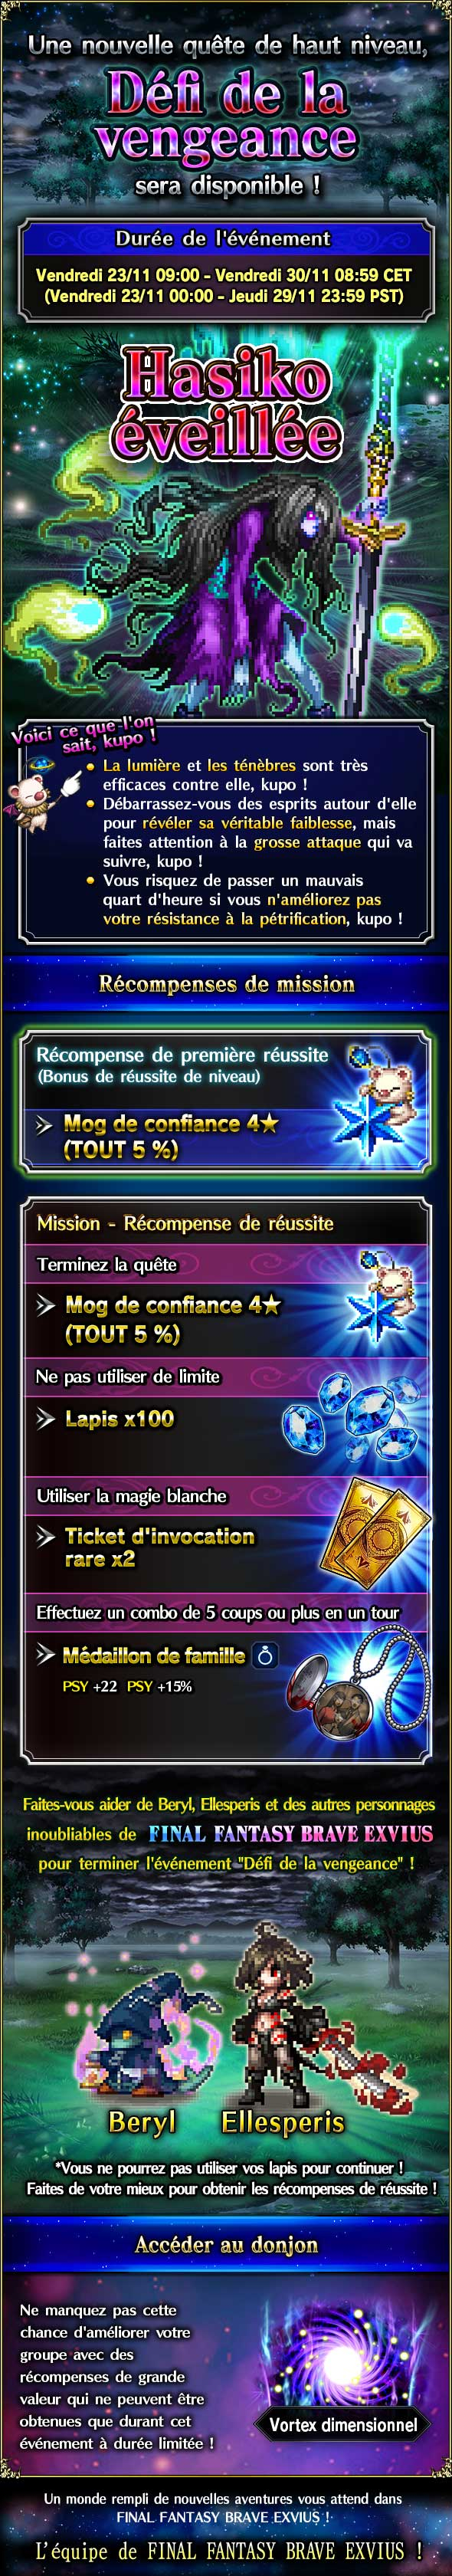 Trial d'Evenement - FFBE - Défi de la Vengeance - du 23/11 au 30/11/18 20181119TrialofVengeance